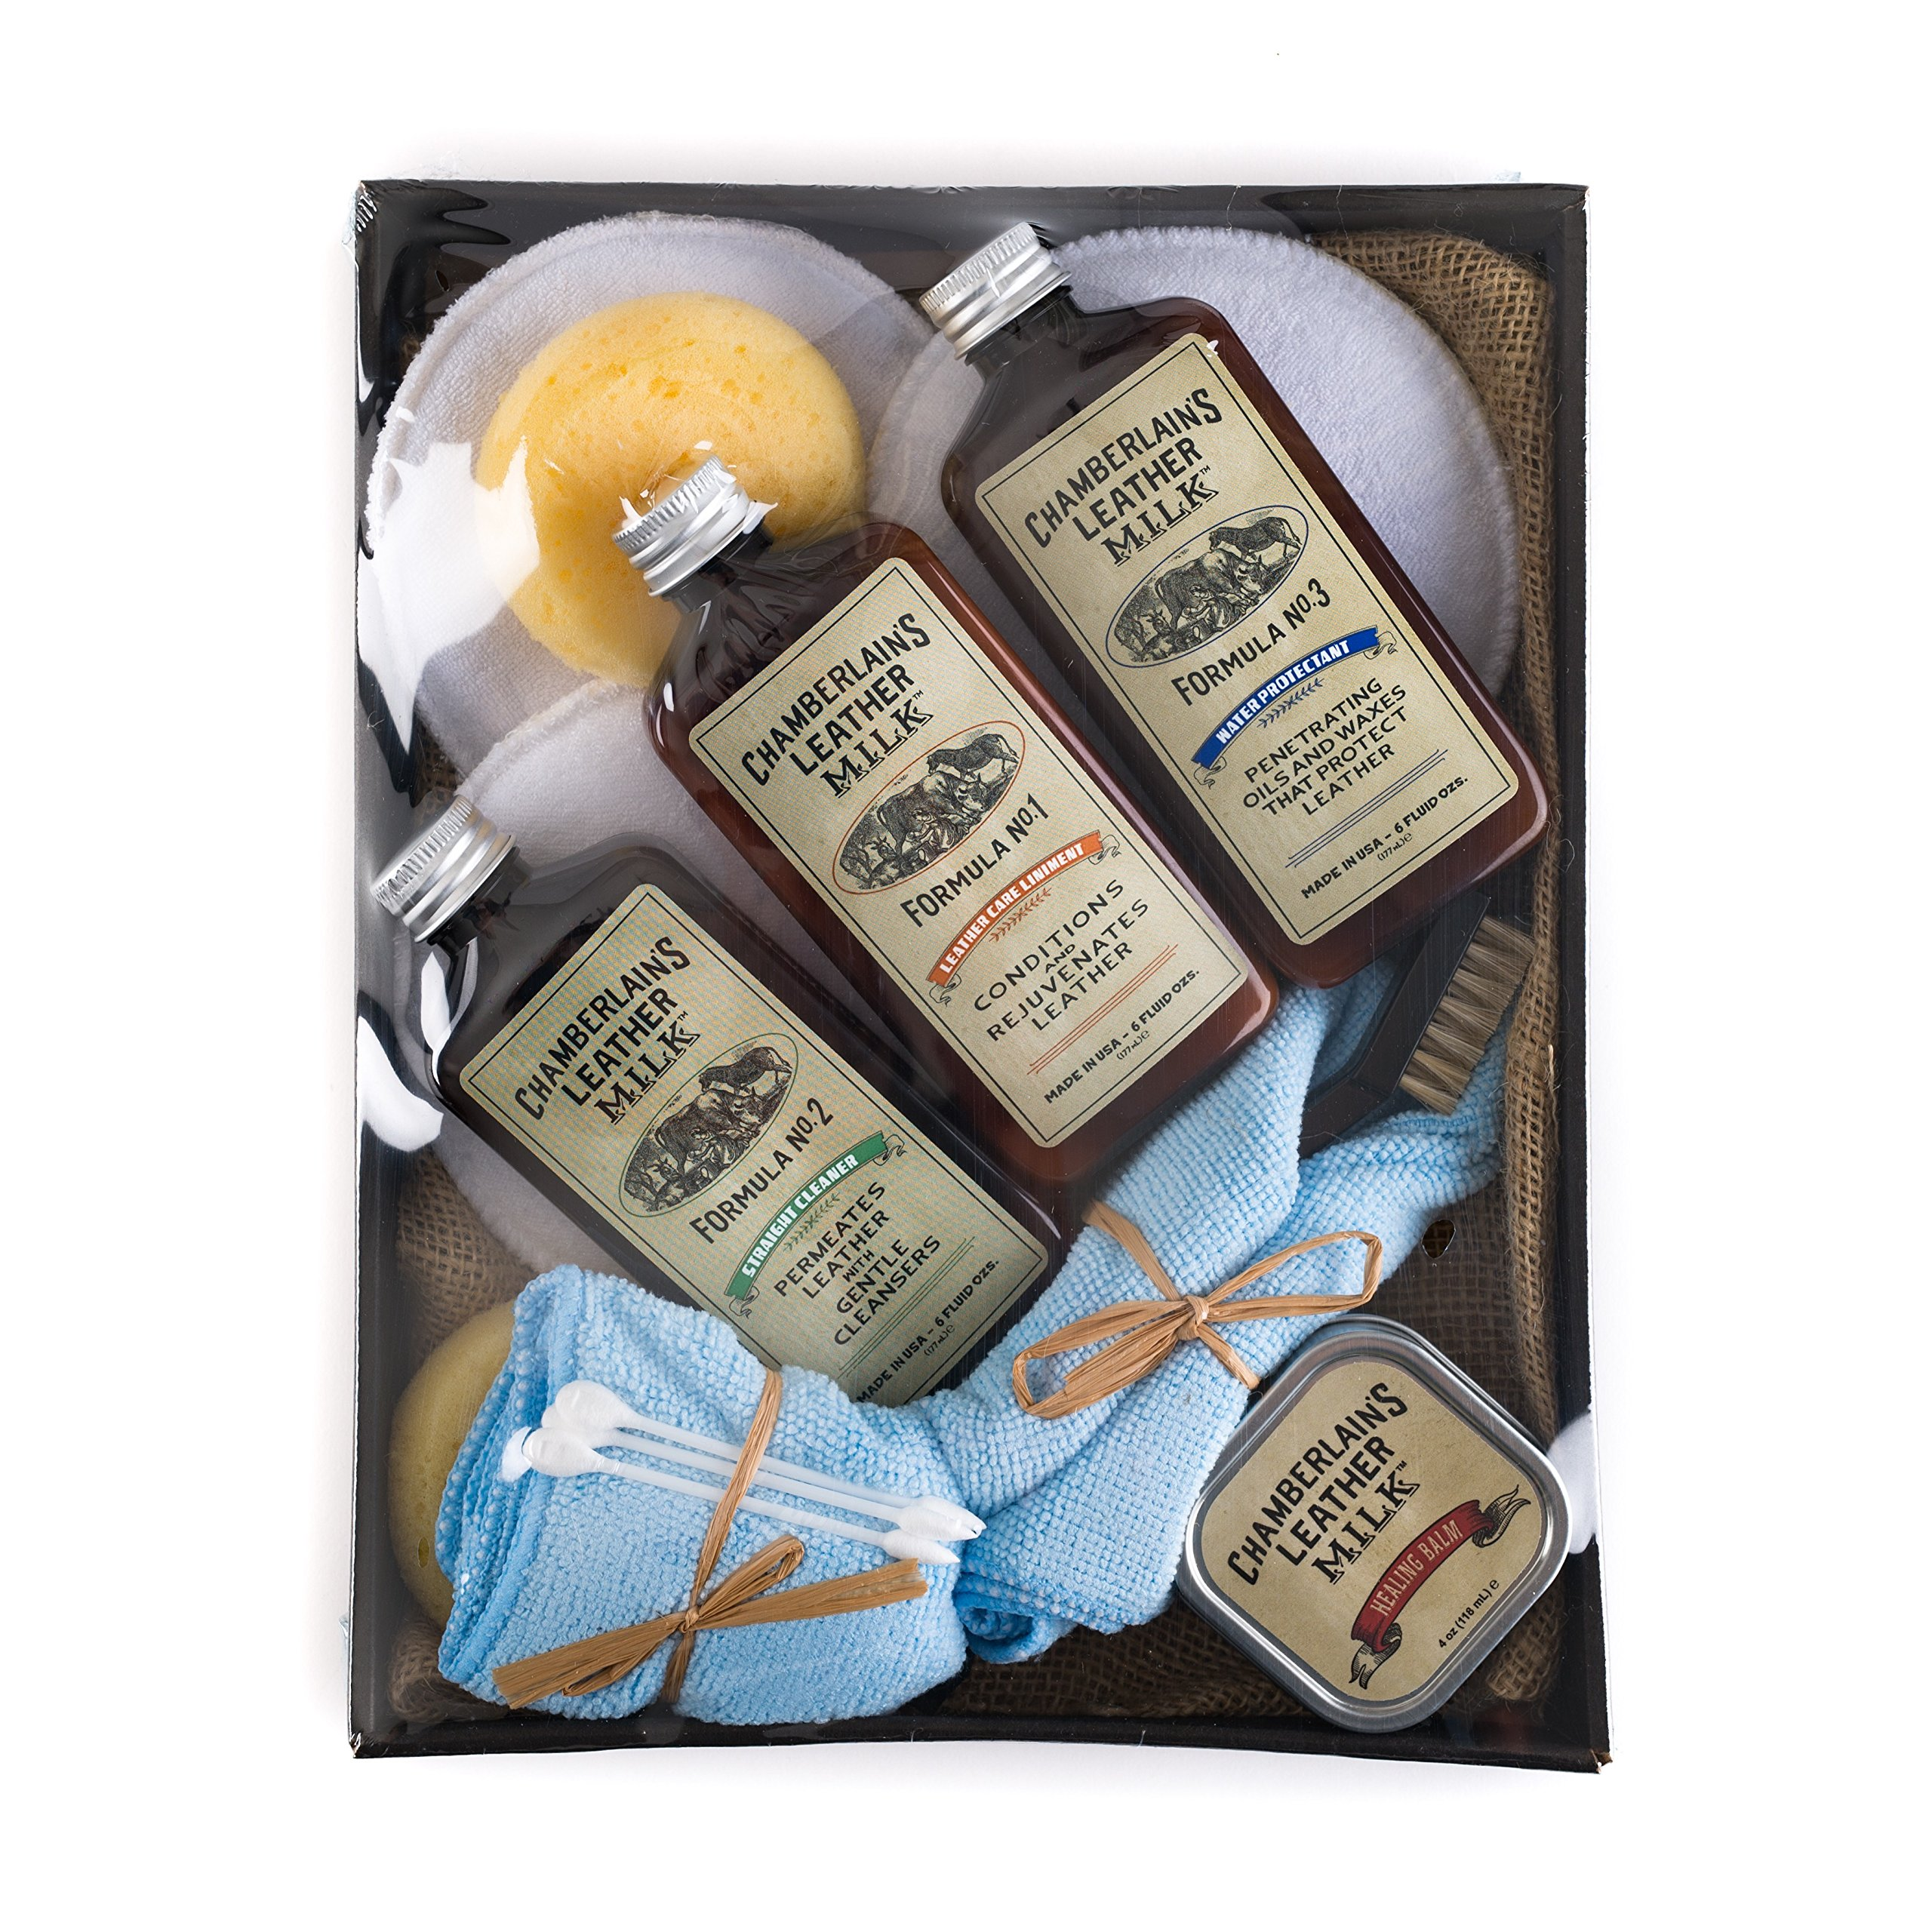 Leather Milk Leather Restoration Kit - Heal & Restore Antique Leather. Cleaner, Conditioner, Water Protectant, Healing Balm, Detailing Brushes, Pads, More! All-Natural. Made in USA by Chamberlain's Leather Milk (Image #5)